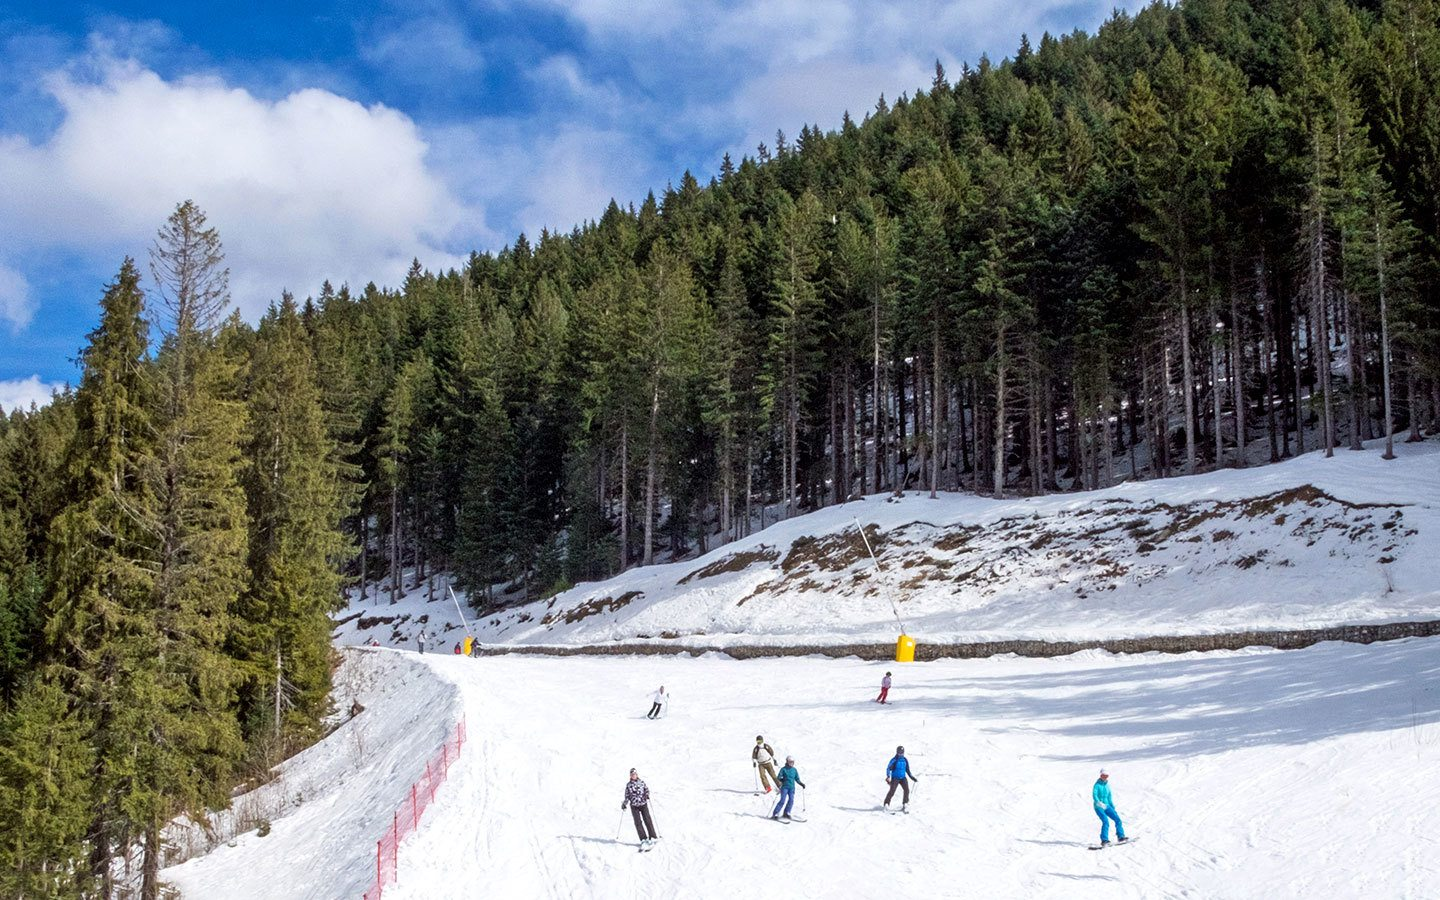 Skiers on the piste in Bansko, Bulgaria